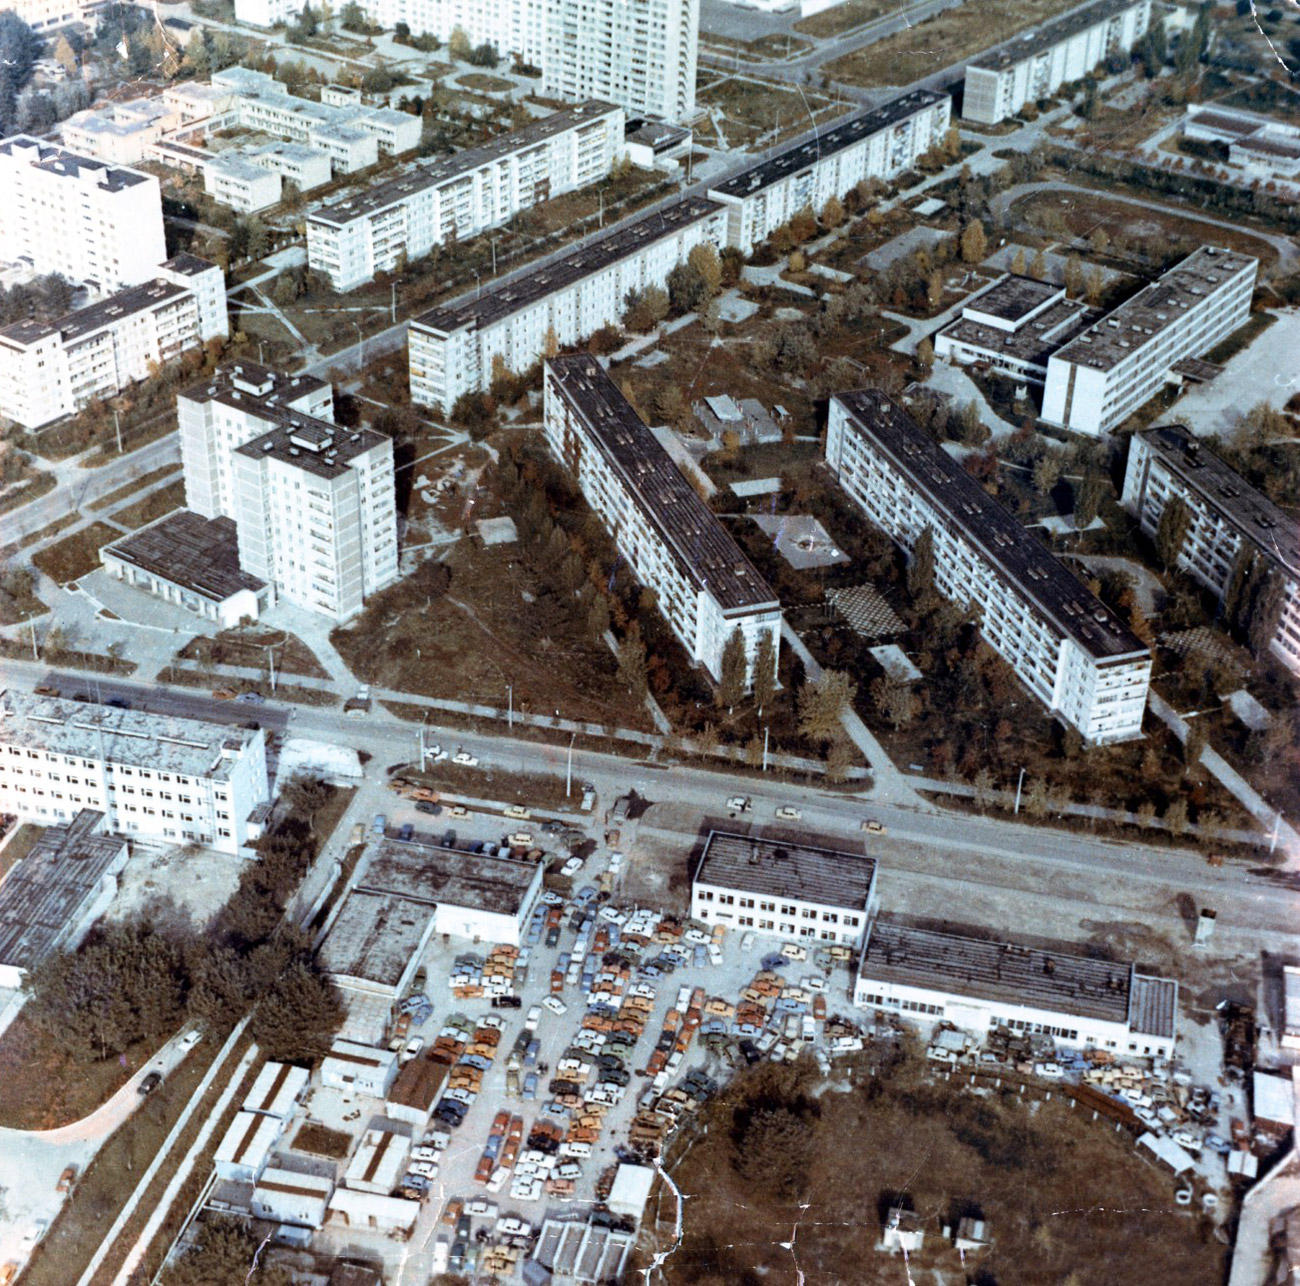 After residents were evacuated from Pripyat and other nearby settlements, a 30-kilometer exclusion zone was set up around the nuclear facility.